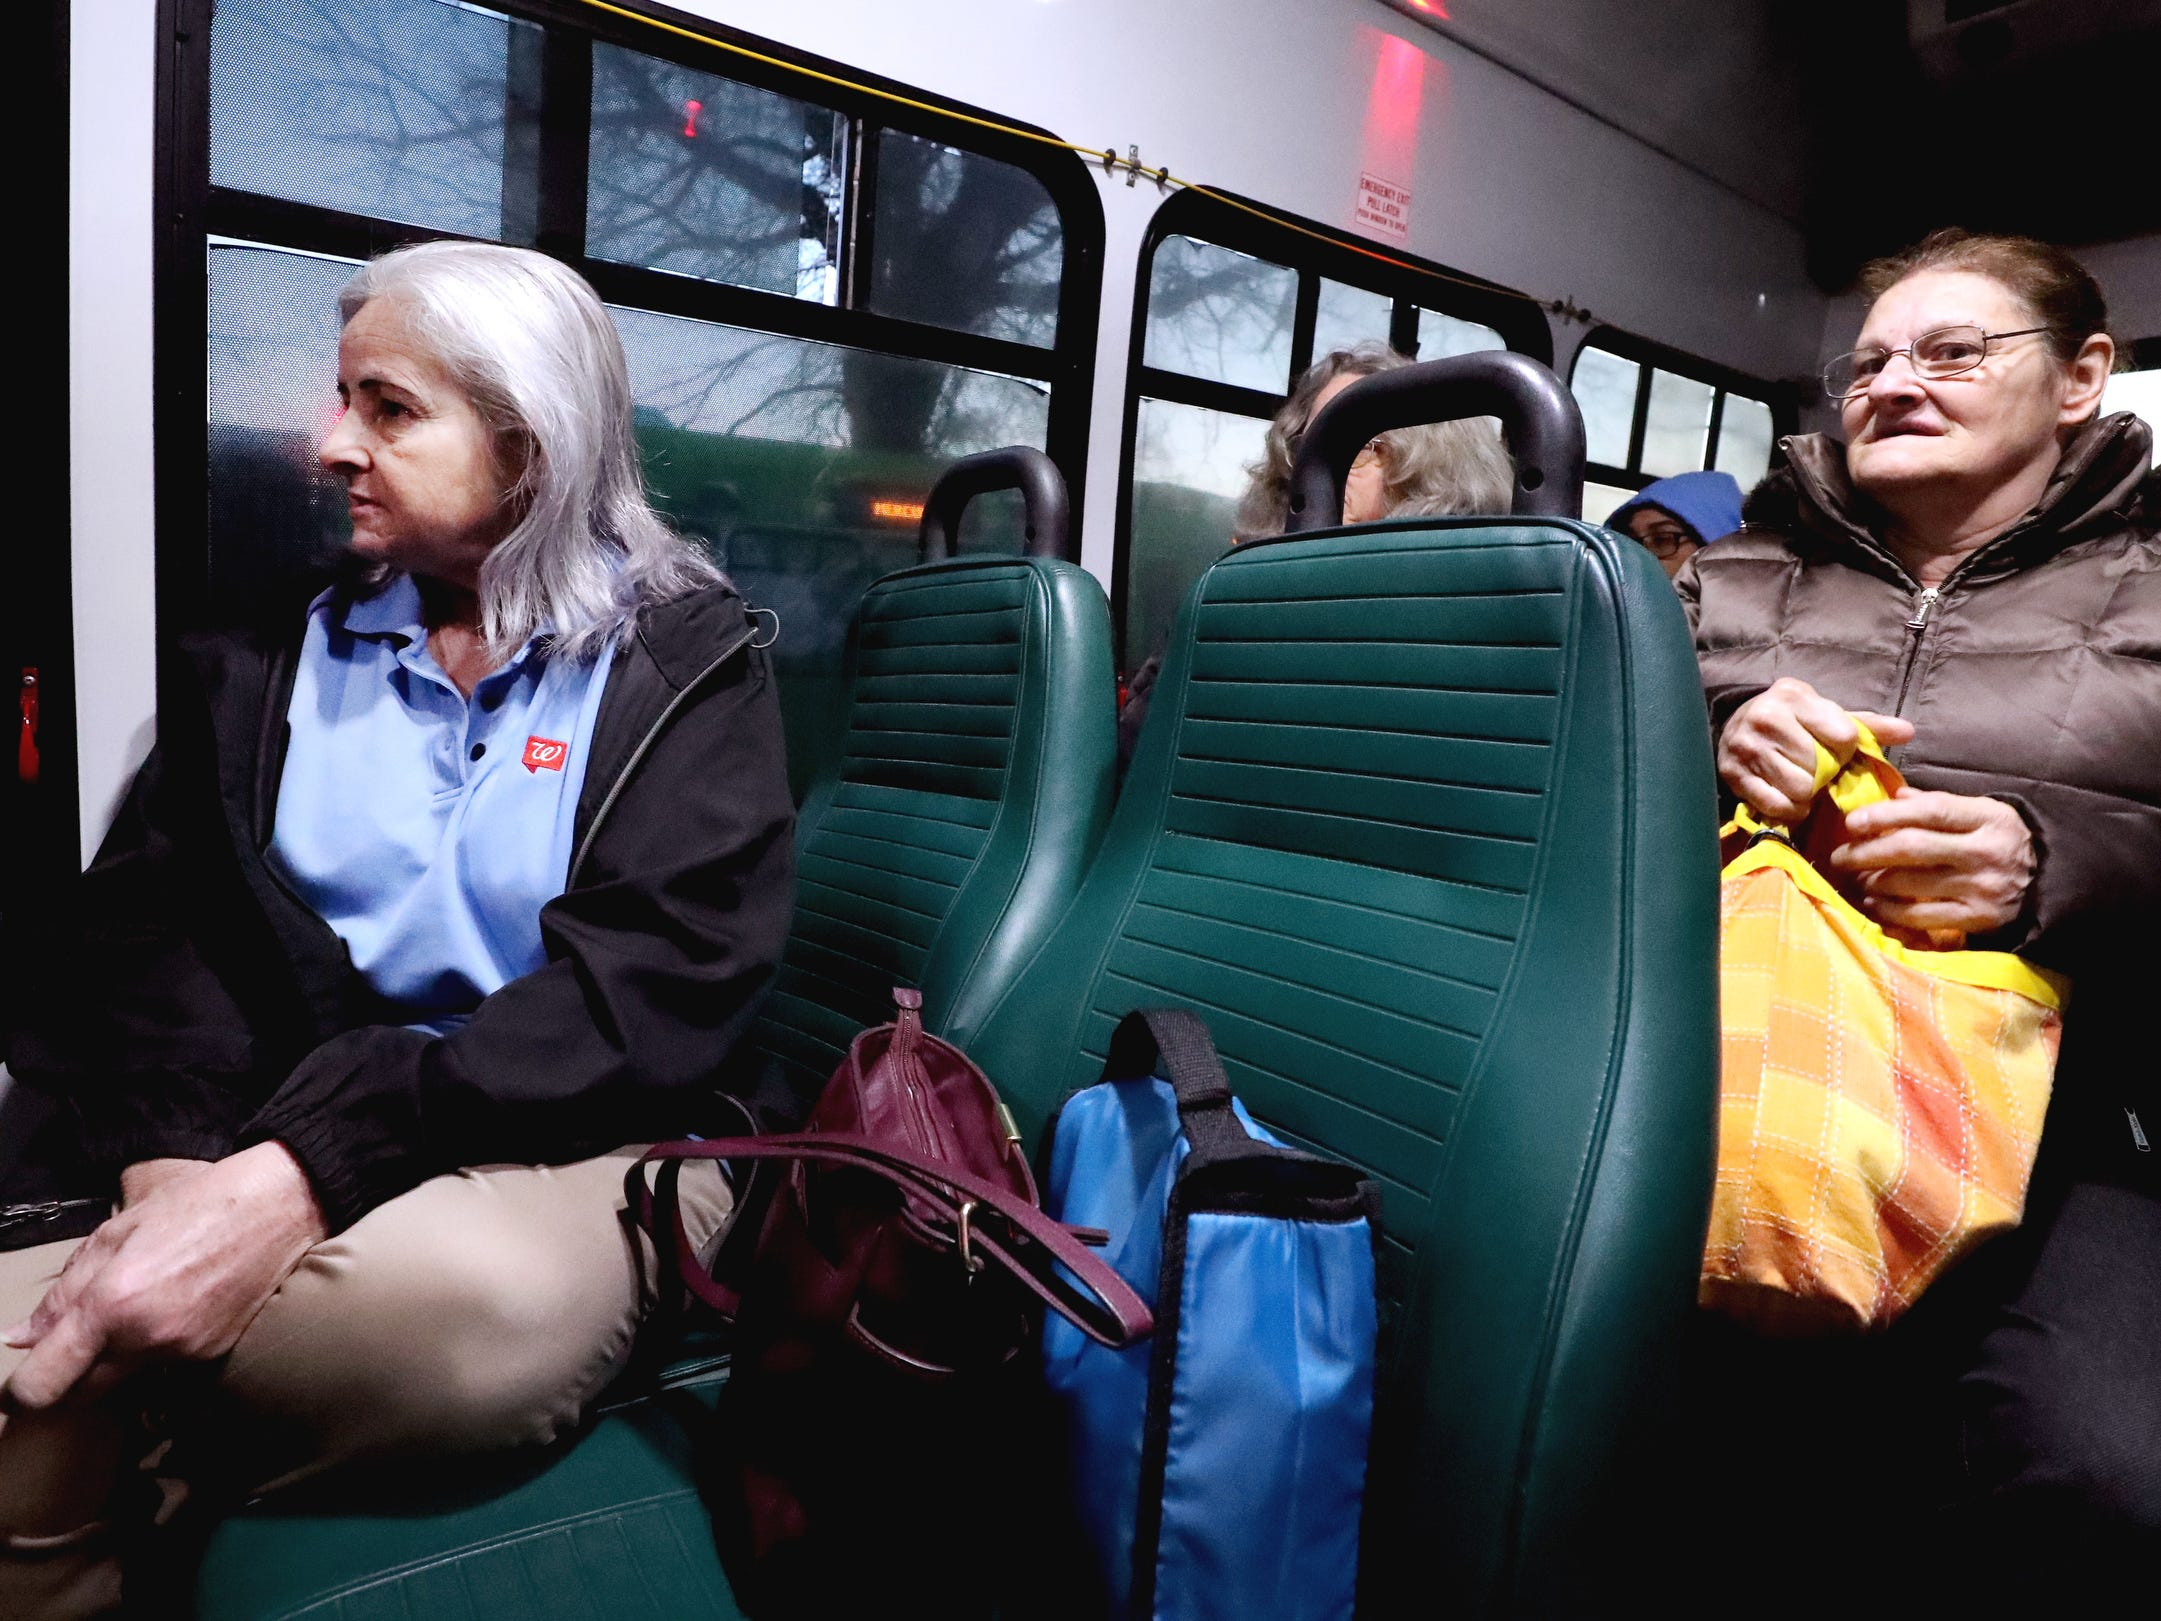 Mindy Hughes rides the Rover bus to go to work at Walgreens, on Tuesday, March 19, 2019. Many people rely on the Murfreesboro bus service Rover to get back and forth to their jobs. Charlotte Huntley rides to work behind Hughes.